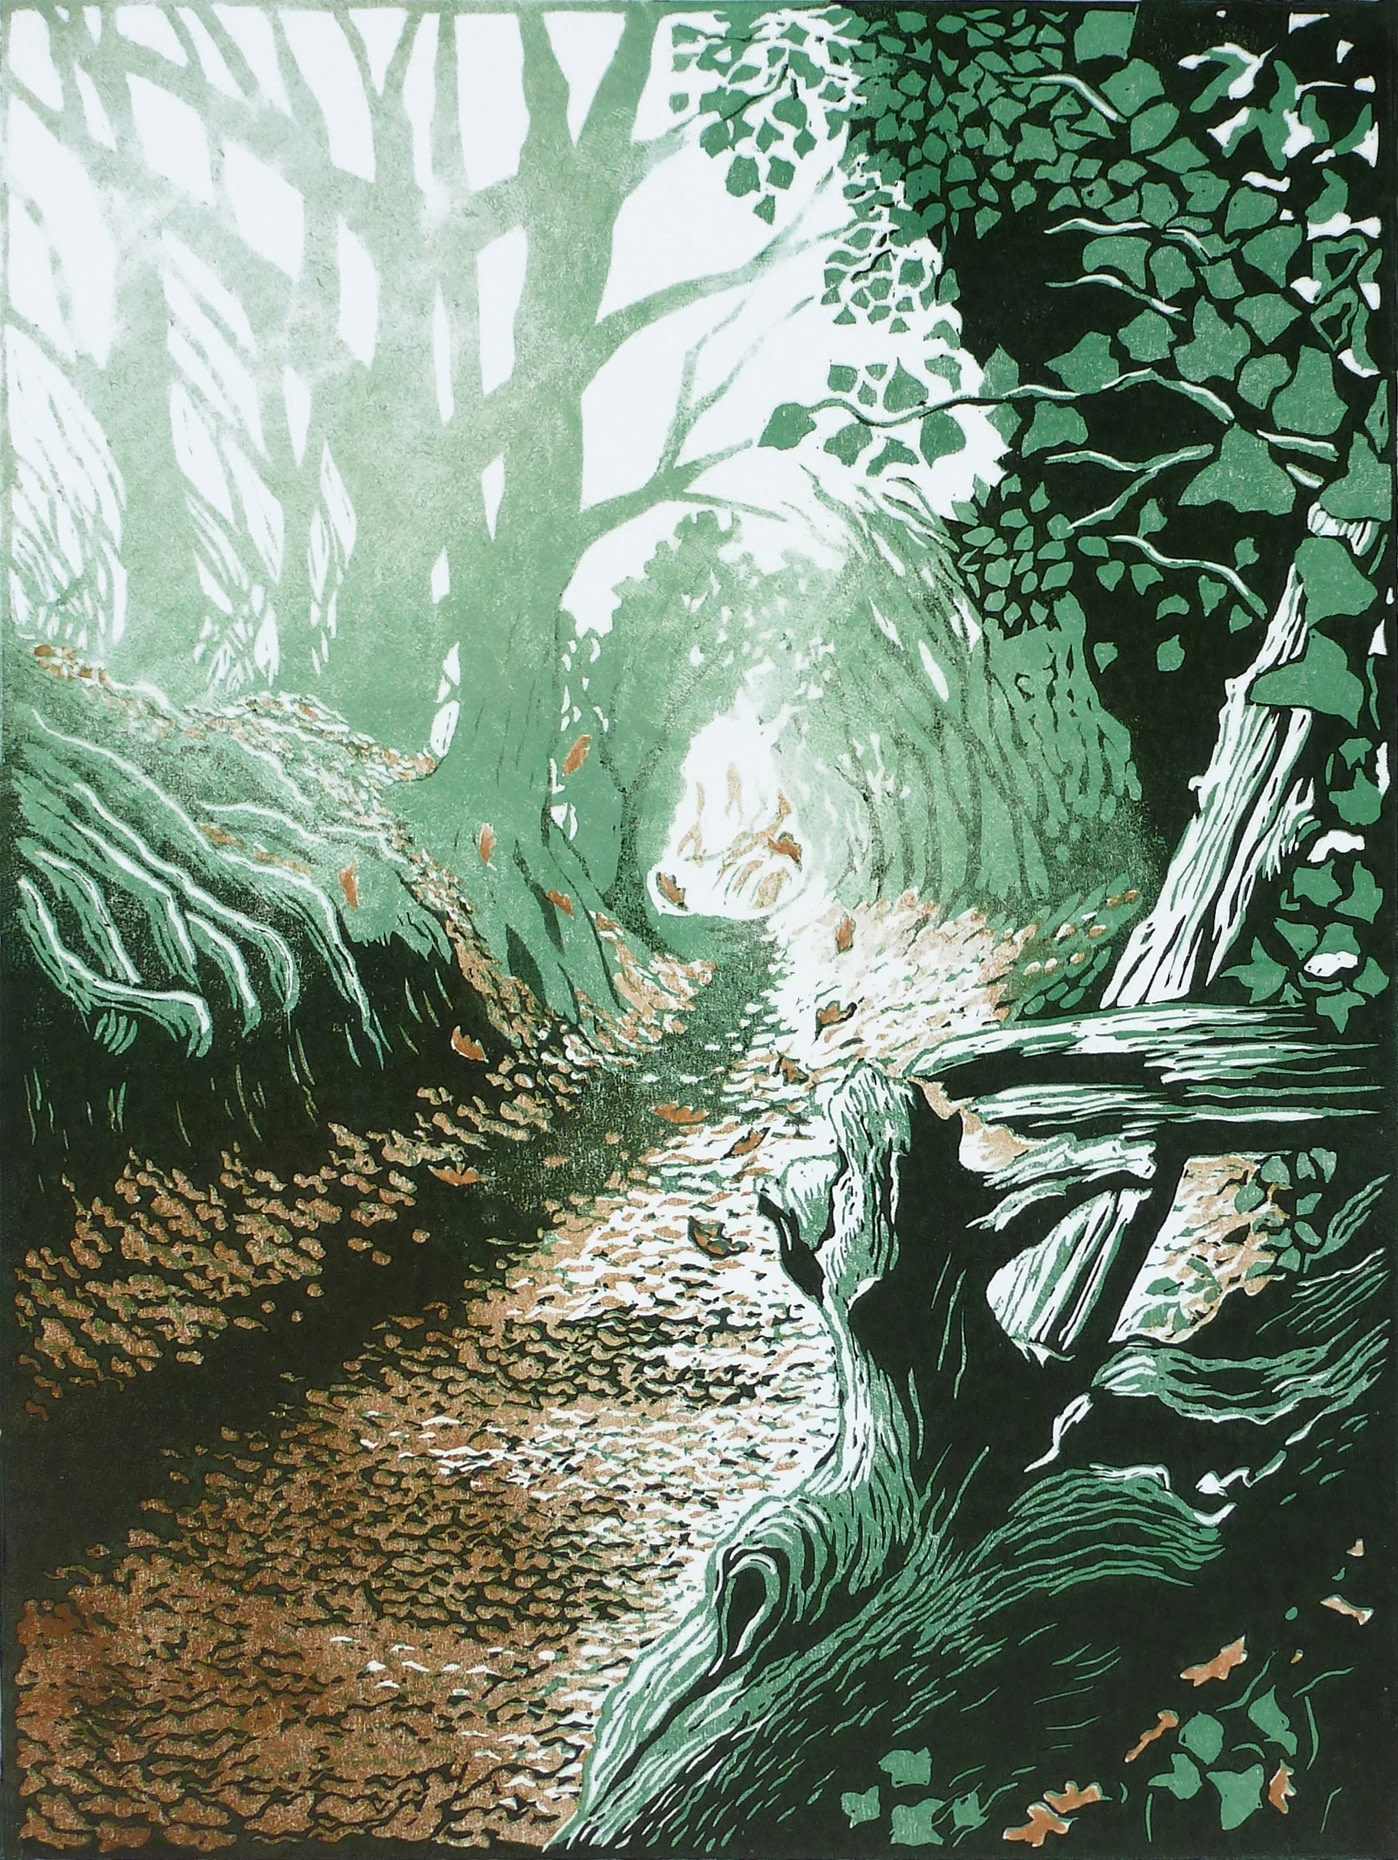 "<span class=""link fancybox-details-link""><a href=""/exhibitions/17/works/image_standalone716/"">View Detail Page</a></span><p><strong>Beth Knight</strong></p><p>Gypsy Lane</p><p>linocut, ed of 12</p><p>29 x 34cm</p><p>£380 framed</p><p>£300 unframed</p>"